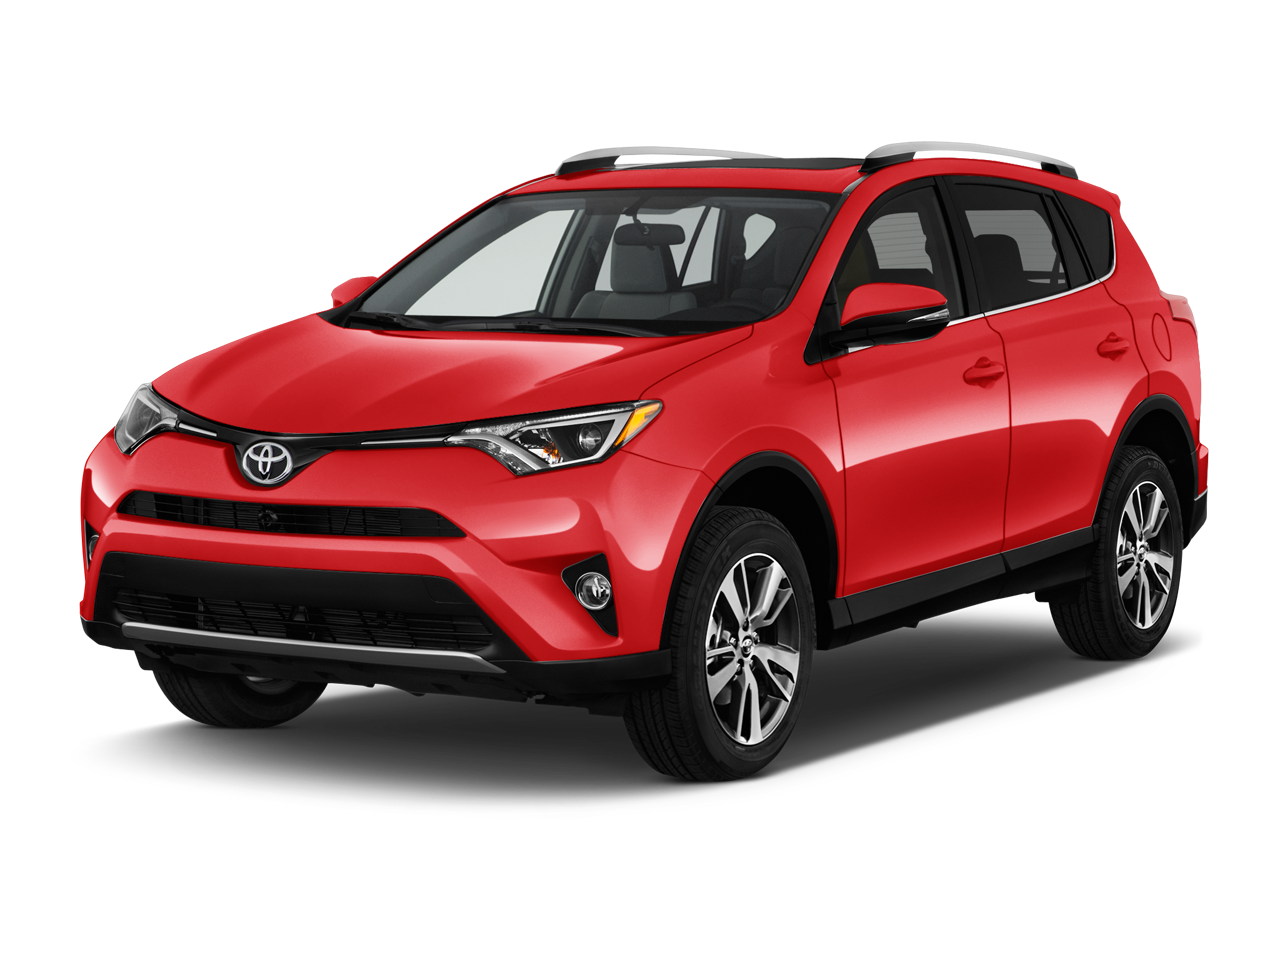 new 2017 toyota rav4 xle near morristown nj toyota of morristown. Black Bedroom Furniture Sets. Home Design Ideas